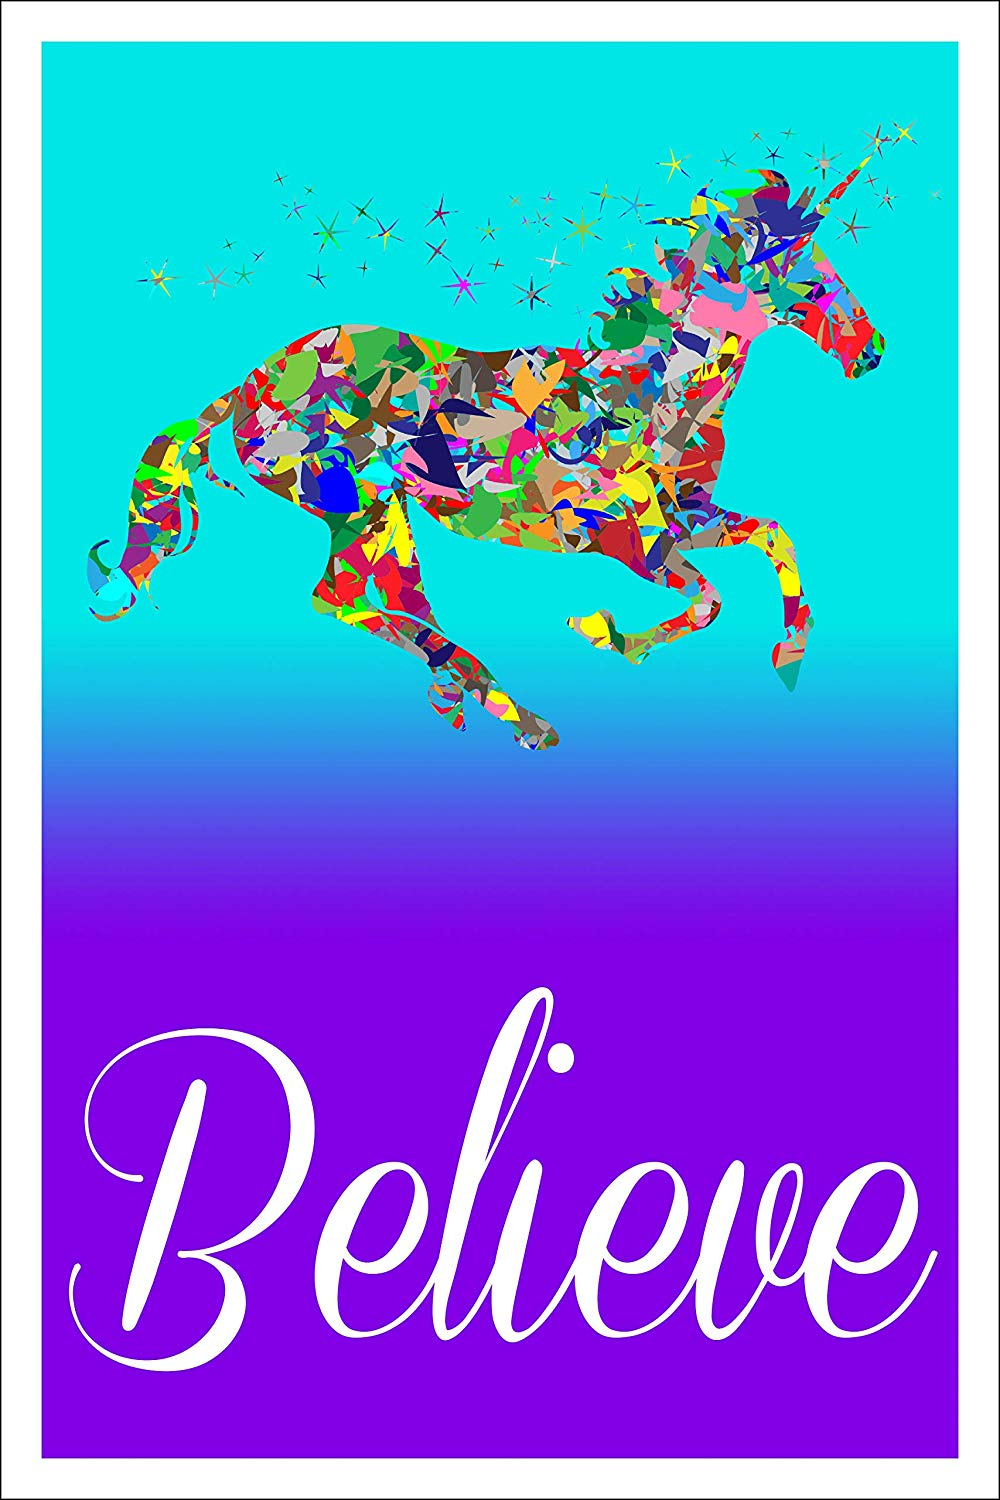 "Spitzy's Believe 12"" x 18"" Poster - Motivational and Inspirational Unicorn Wall Artwork"